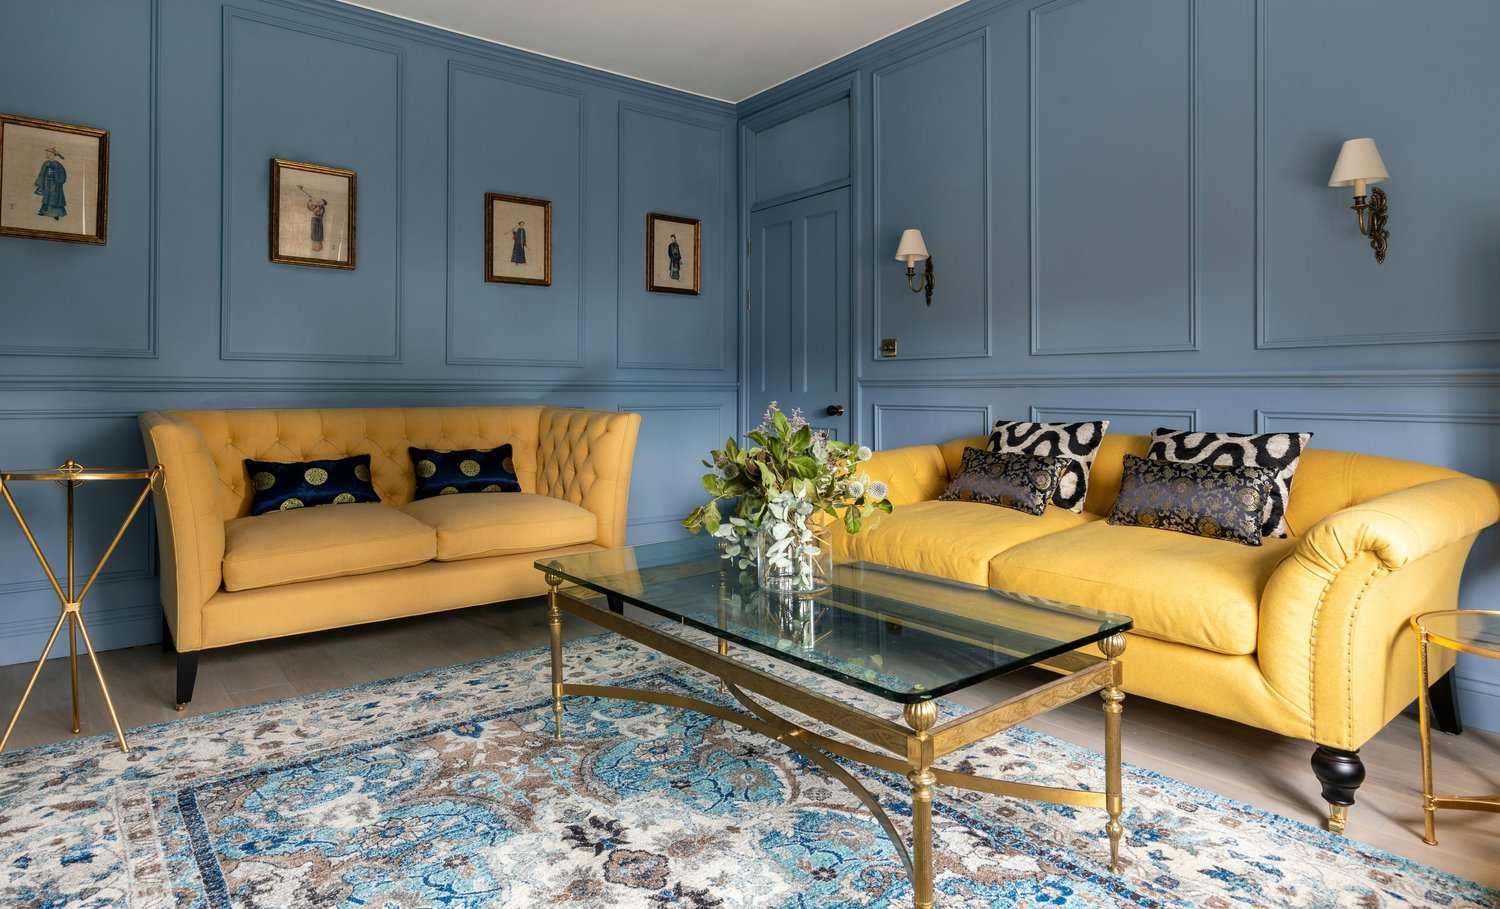 Groovy 19 Gorgeous Living Room Color Schemes For Every Taste Squirreltailoven Fun Painted Chair Ideas Images Squirreltailovenorg